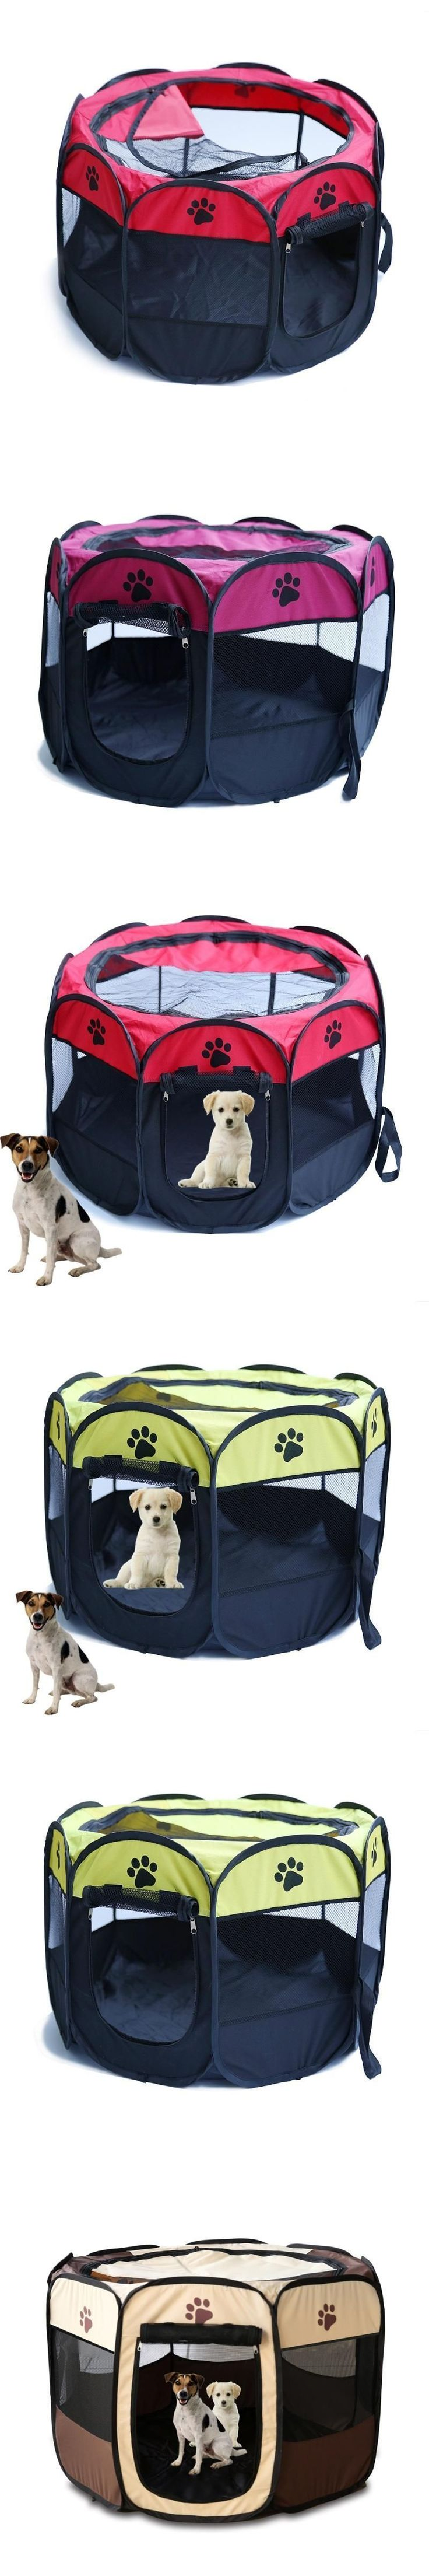 Dogs Bed #dog Cage Extra Large Cama Perro Kennel Soft Sofa Cama Pet Dog Cat Warm Bed Pet Dog Bed Sofa Puppy House Cat House #PuppyHouses